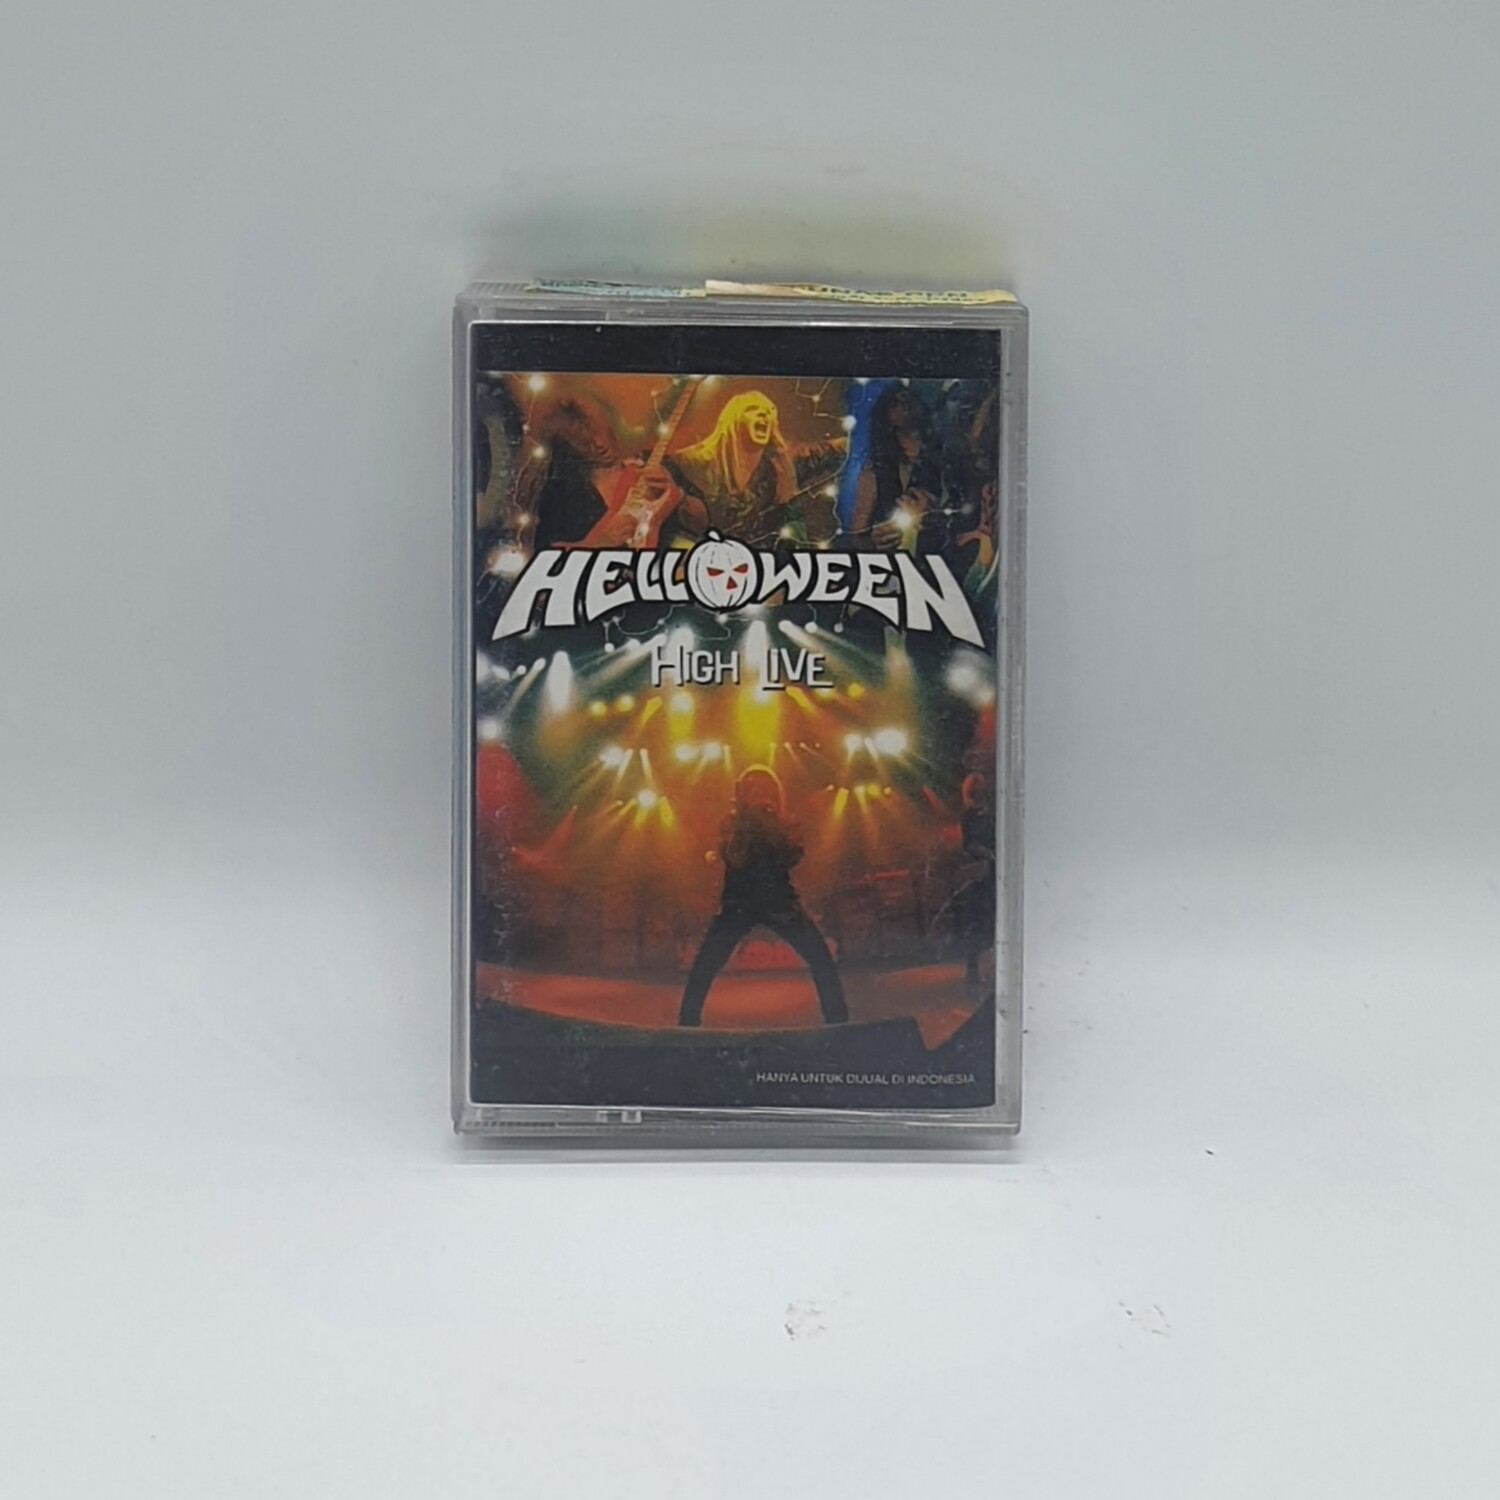 [USED] HELLOWEEN -HIGH LIVE- CASSETTE